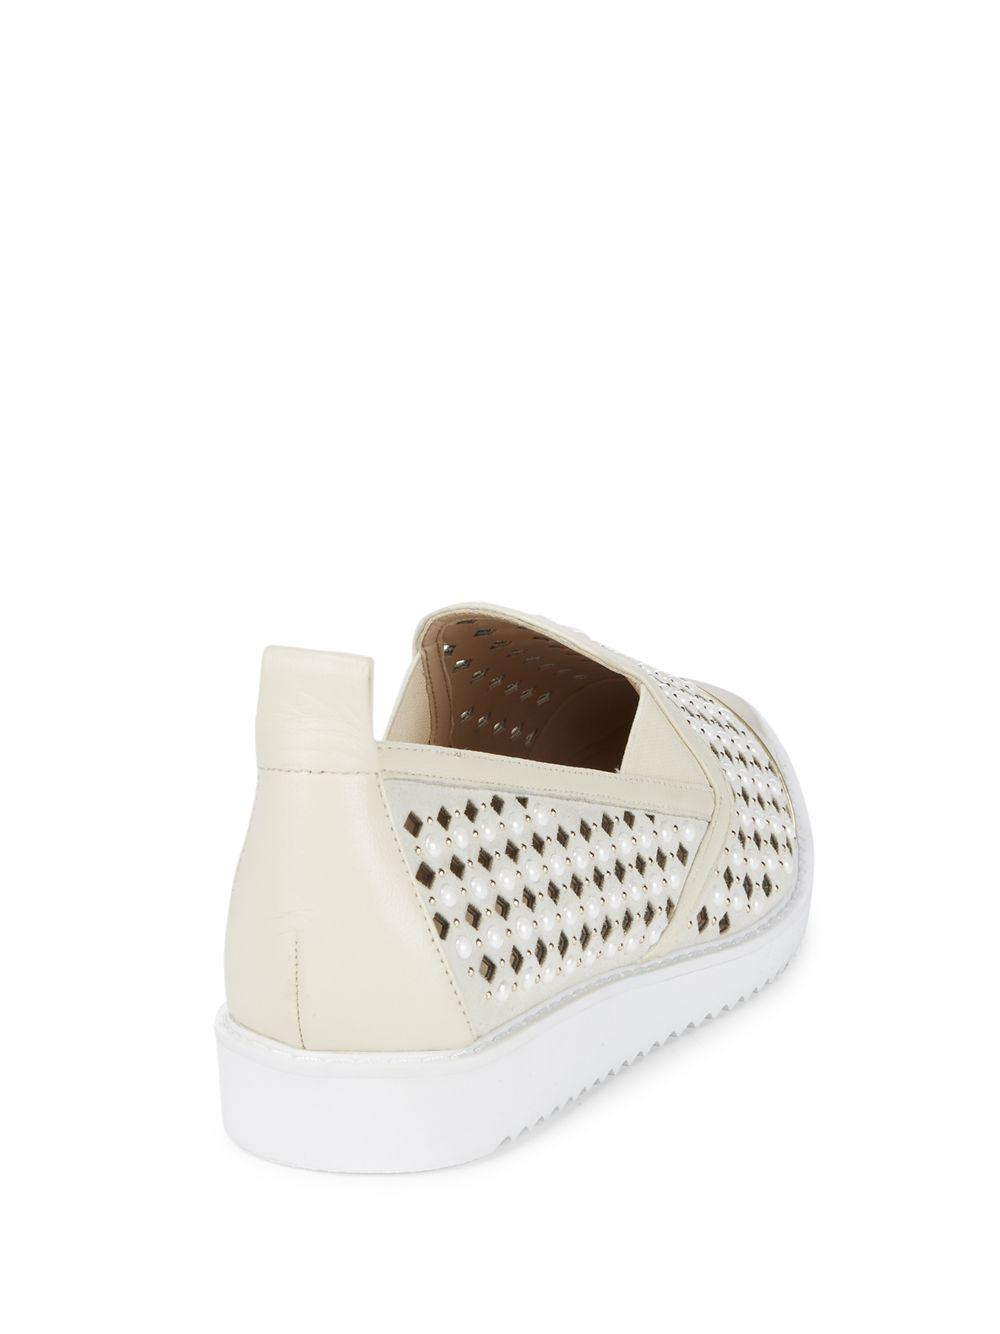 Karl Lagerfeld Leather Carrie Laser-cut Diamond Sneakers in White